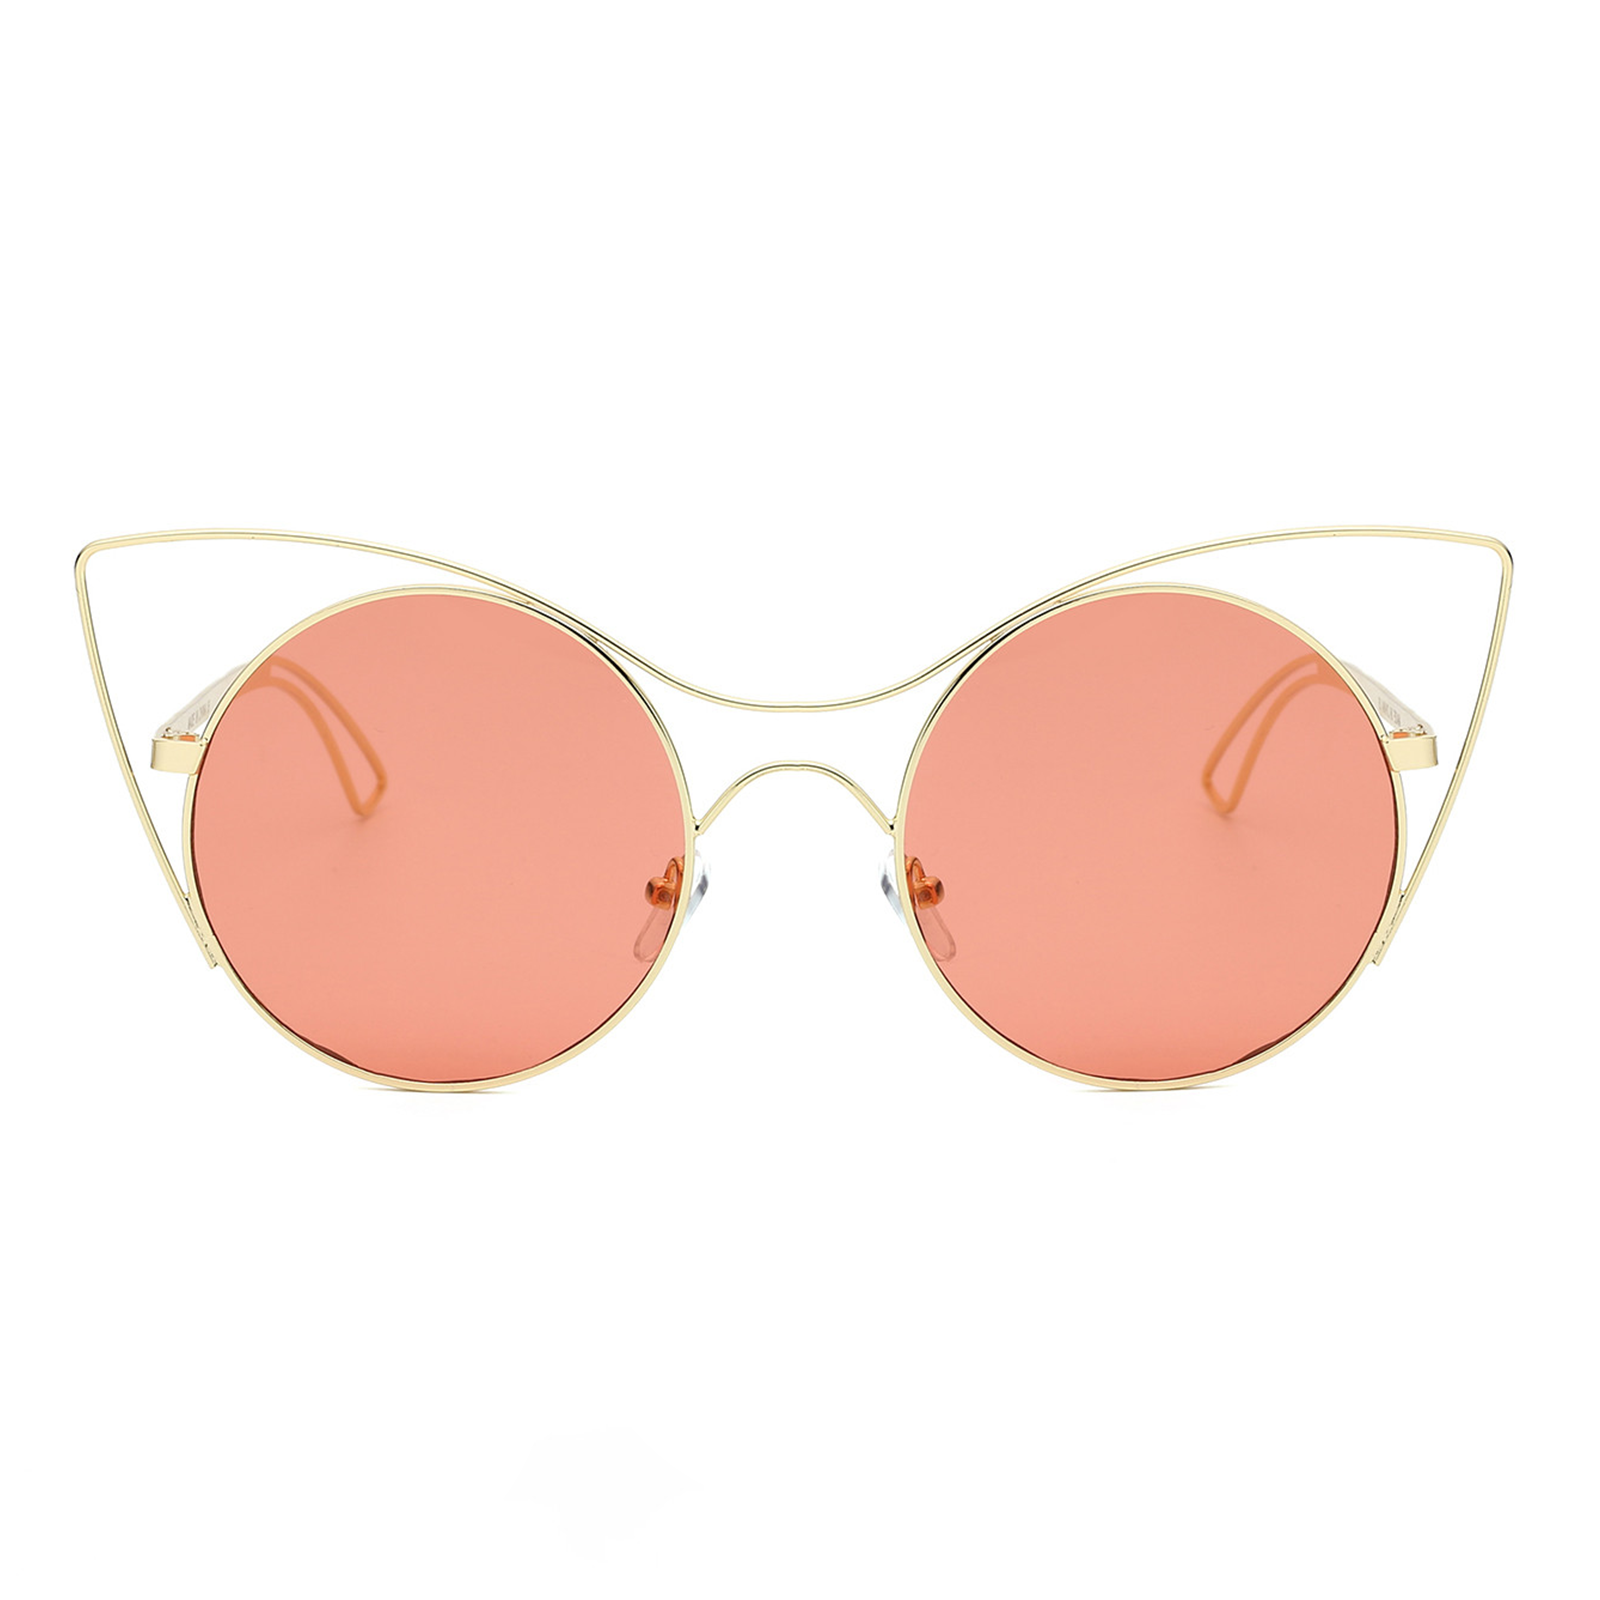 """Chesire"" Cat Eye Sunglasses 2019 Collection - SeeThru™"